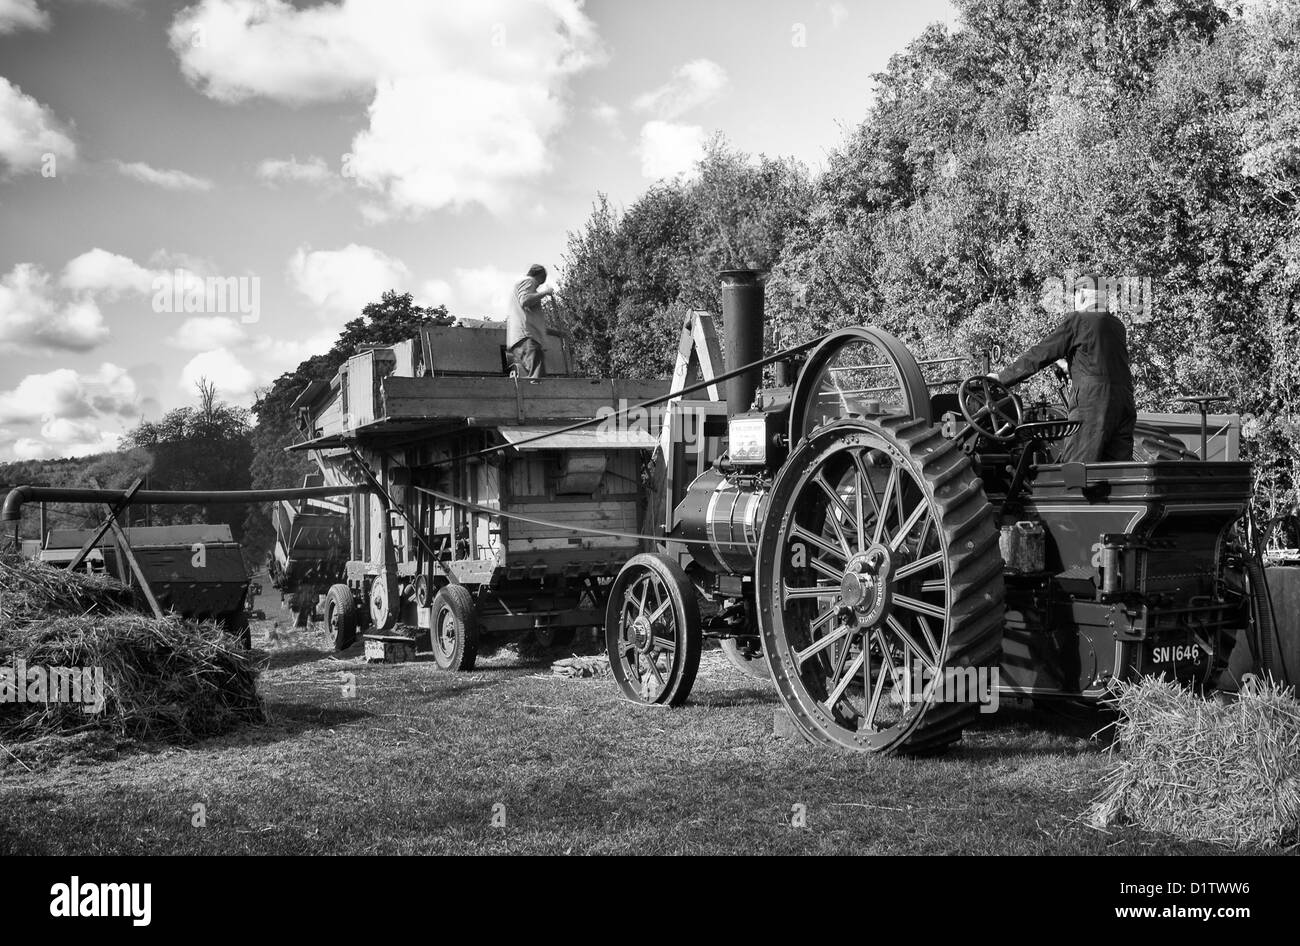 Threshing the old fashioned way, at the Singleton Weald and Downland open air museum, near Chichester, West Sussex - Stock Image